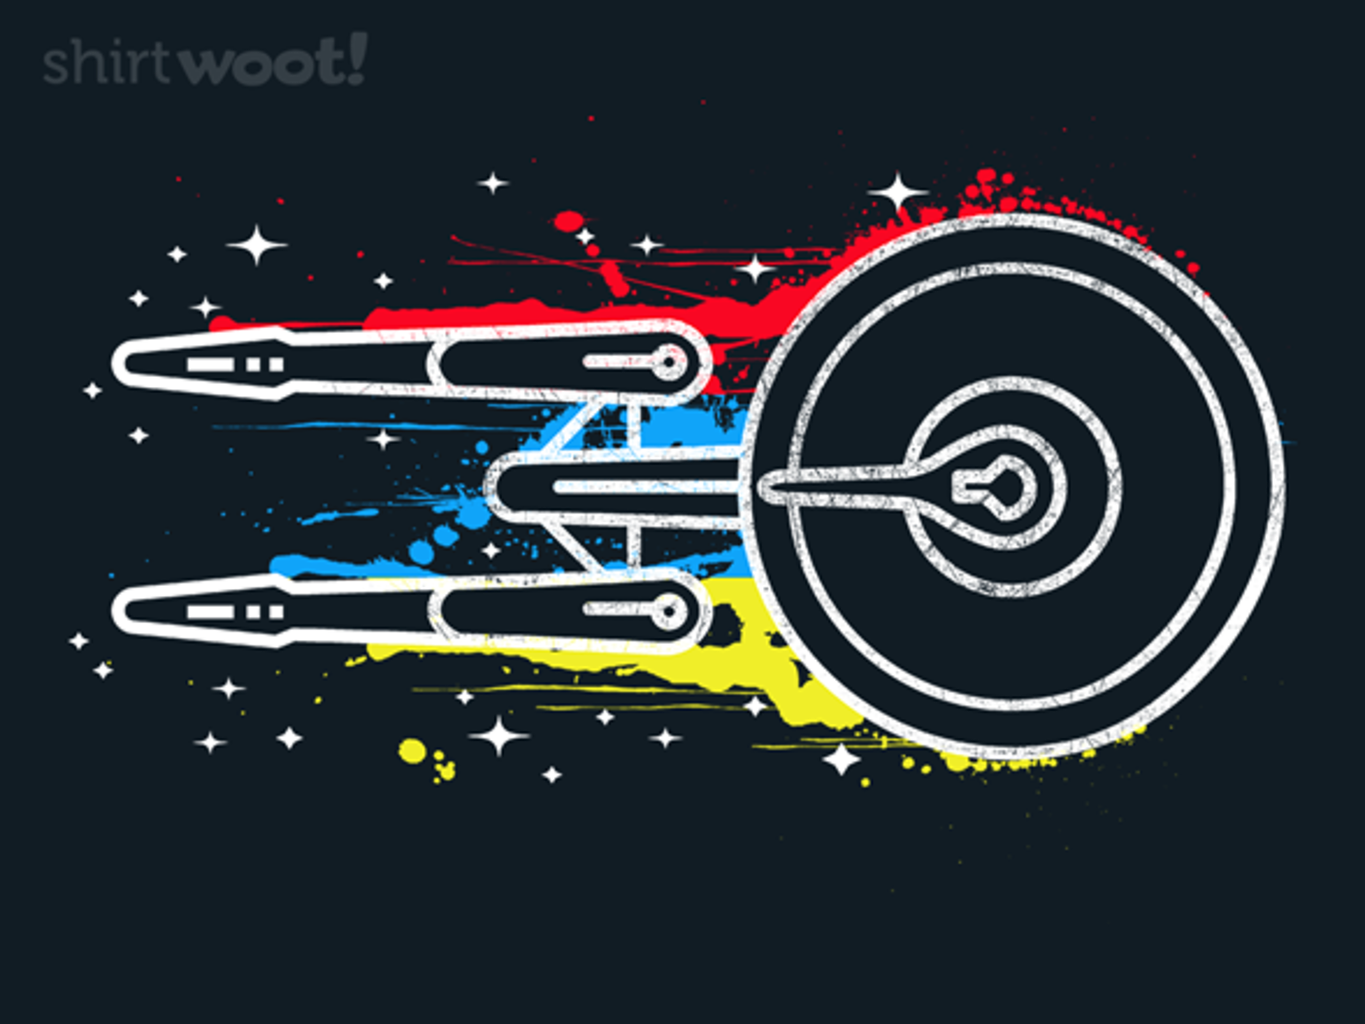 Woot!: Colorful Trek